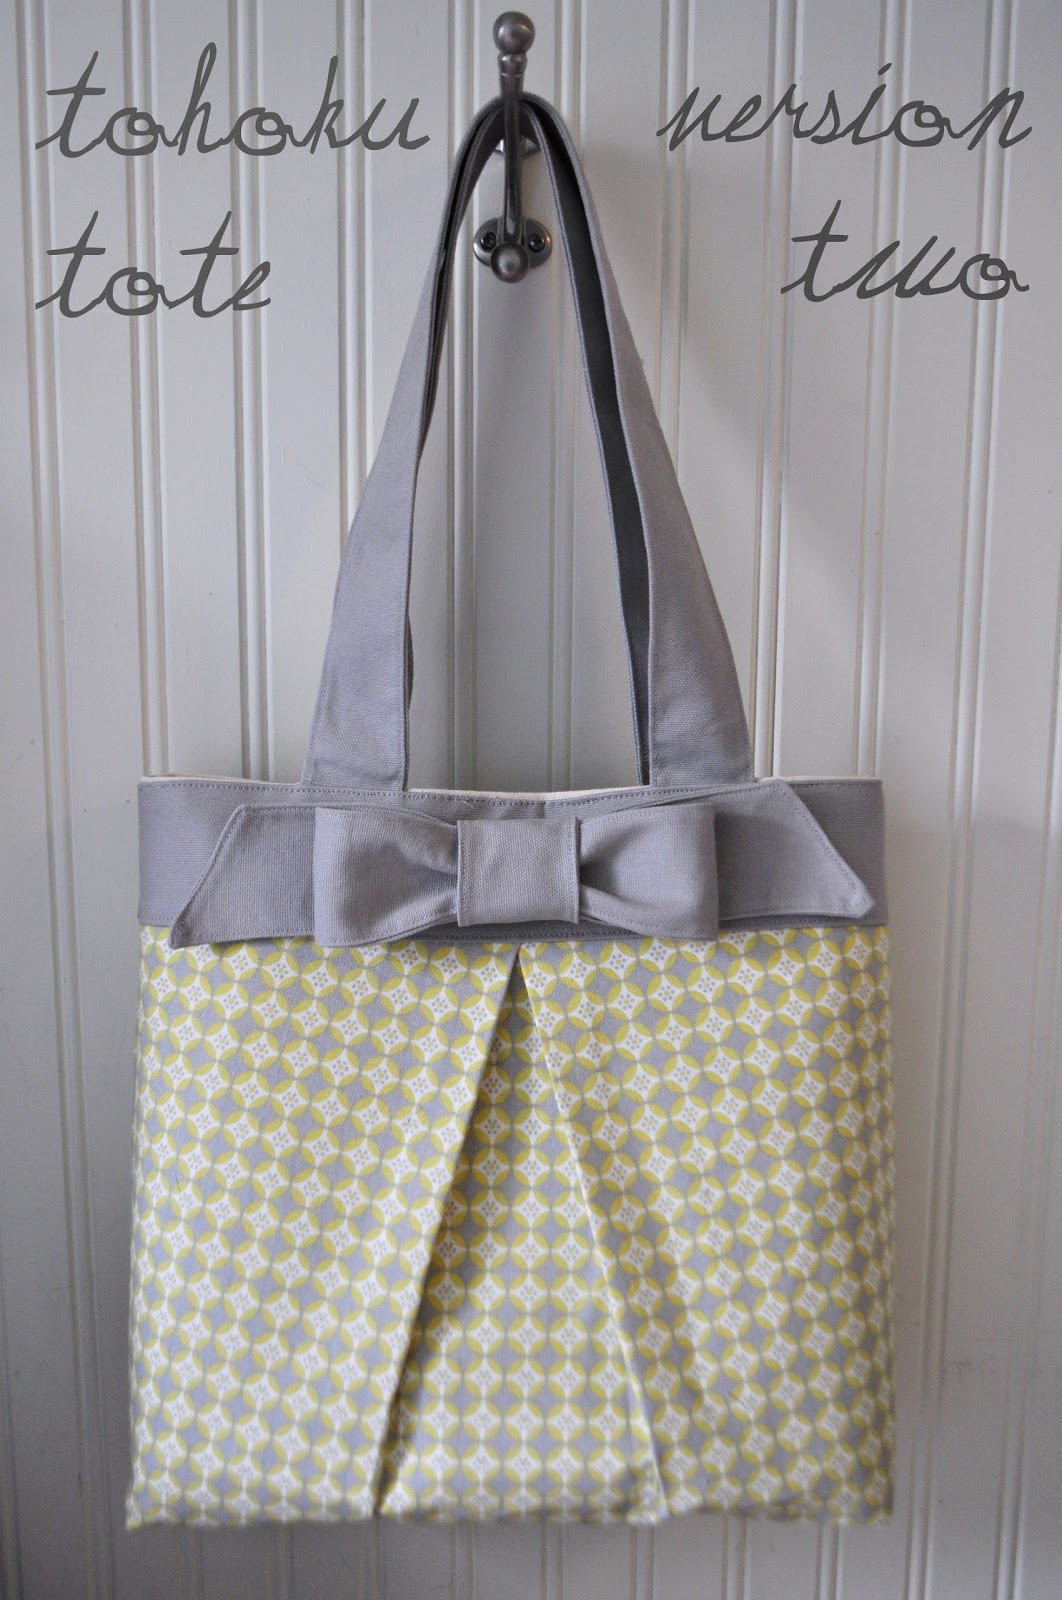 Tote Bag Pattern Unique Quilt Inspiration Free Pattern Day tote Bags Of Beautiful 46 Ideas tote Bag Pattern